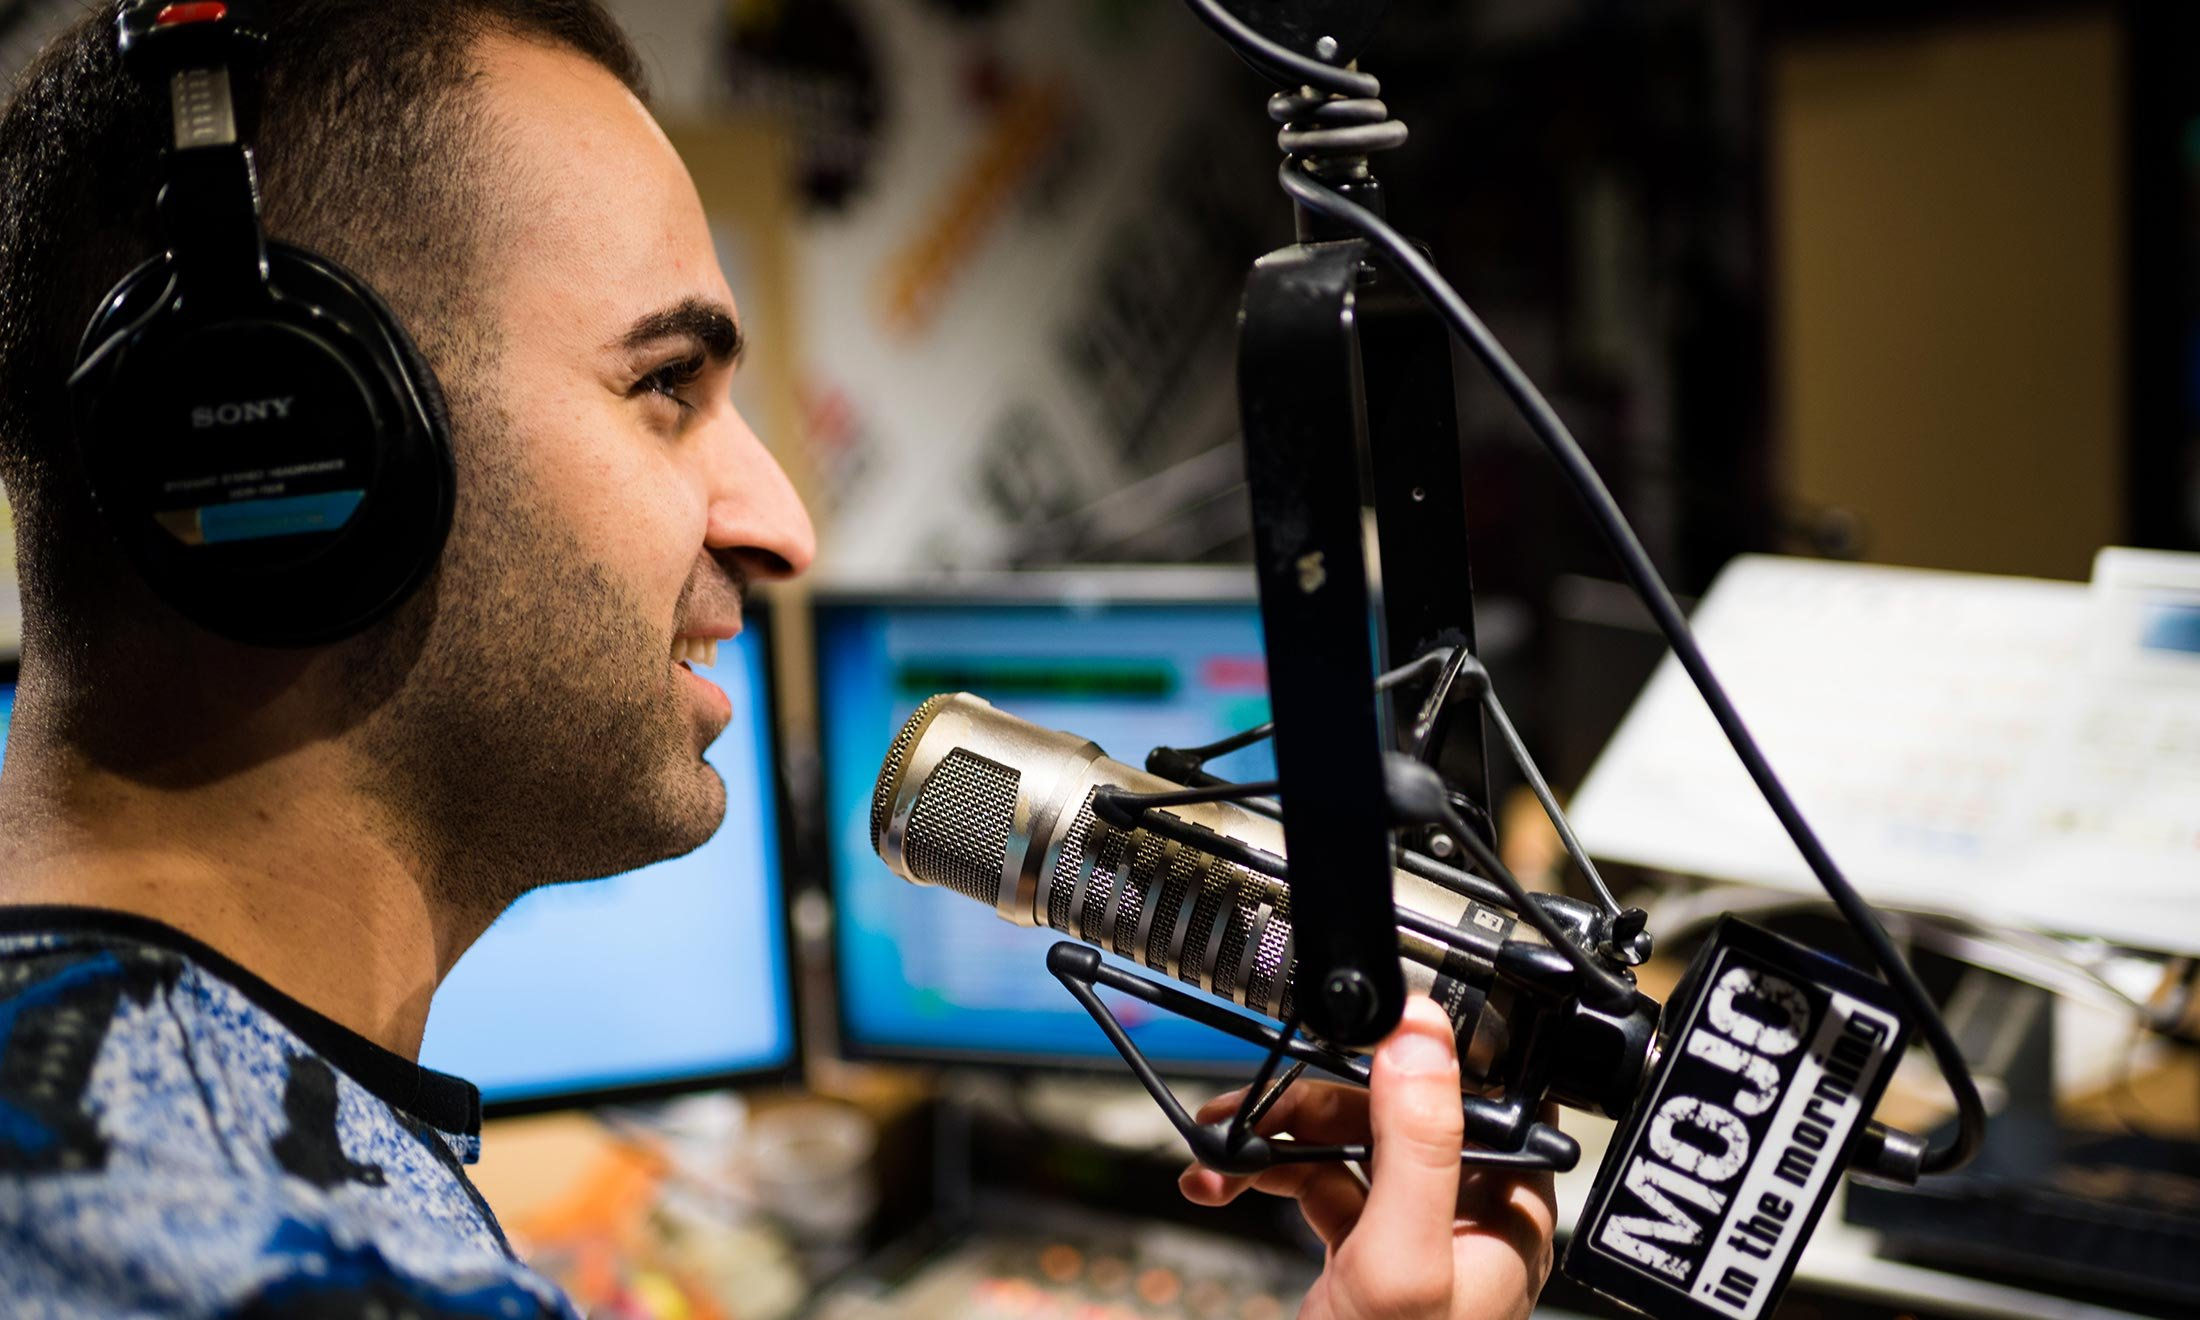 Joe Namou listens for sound with his headphones in the iHeartRadio studio